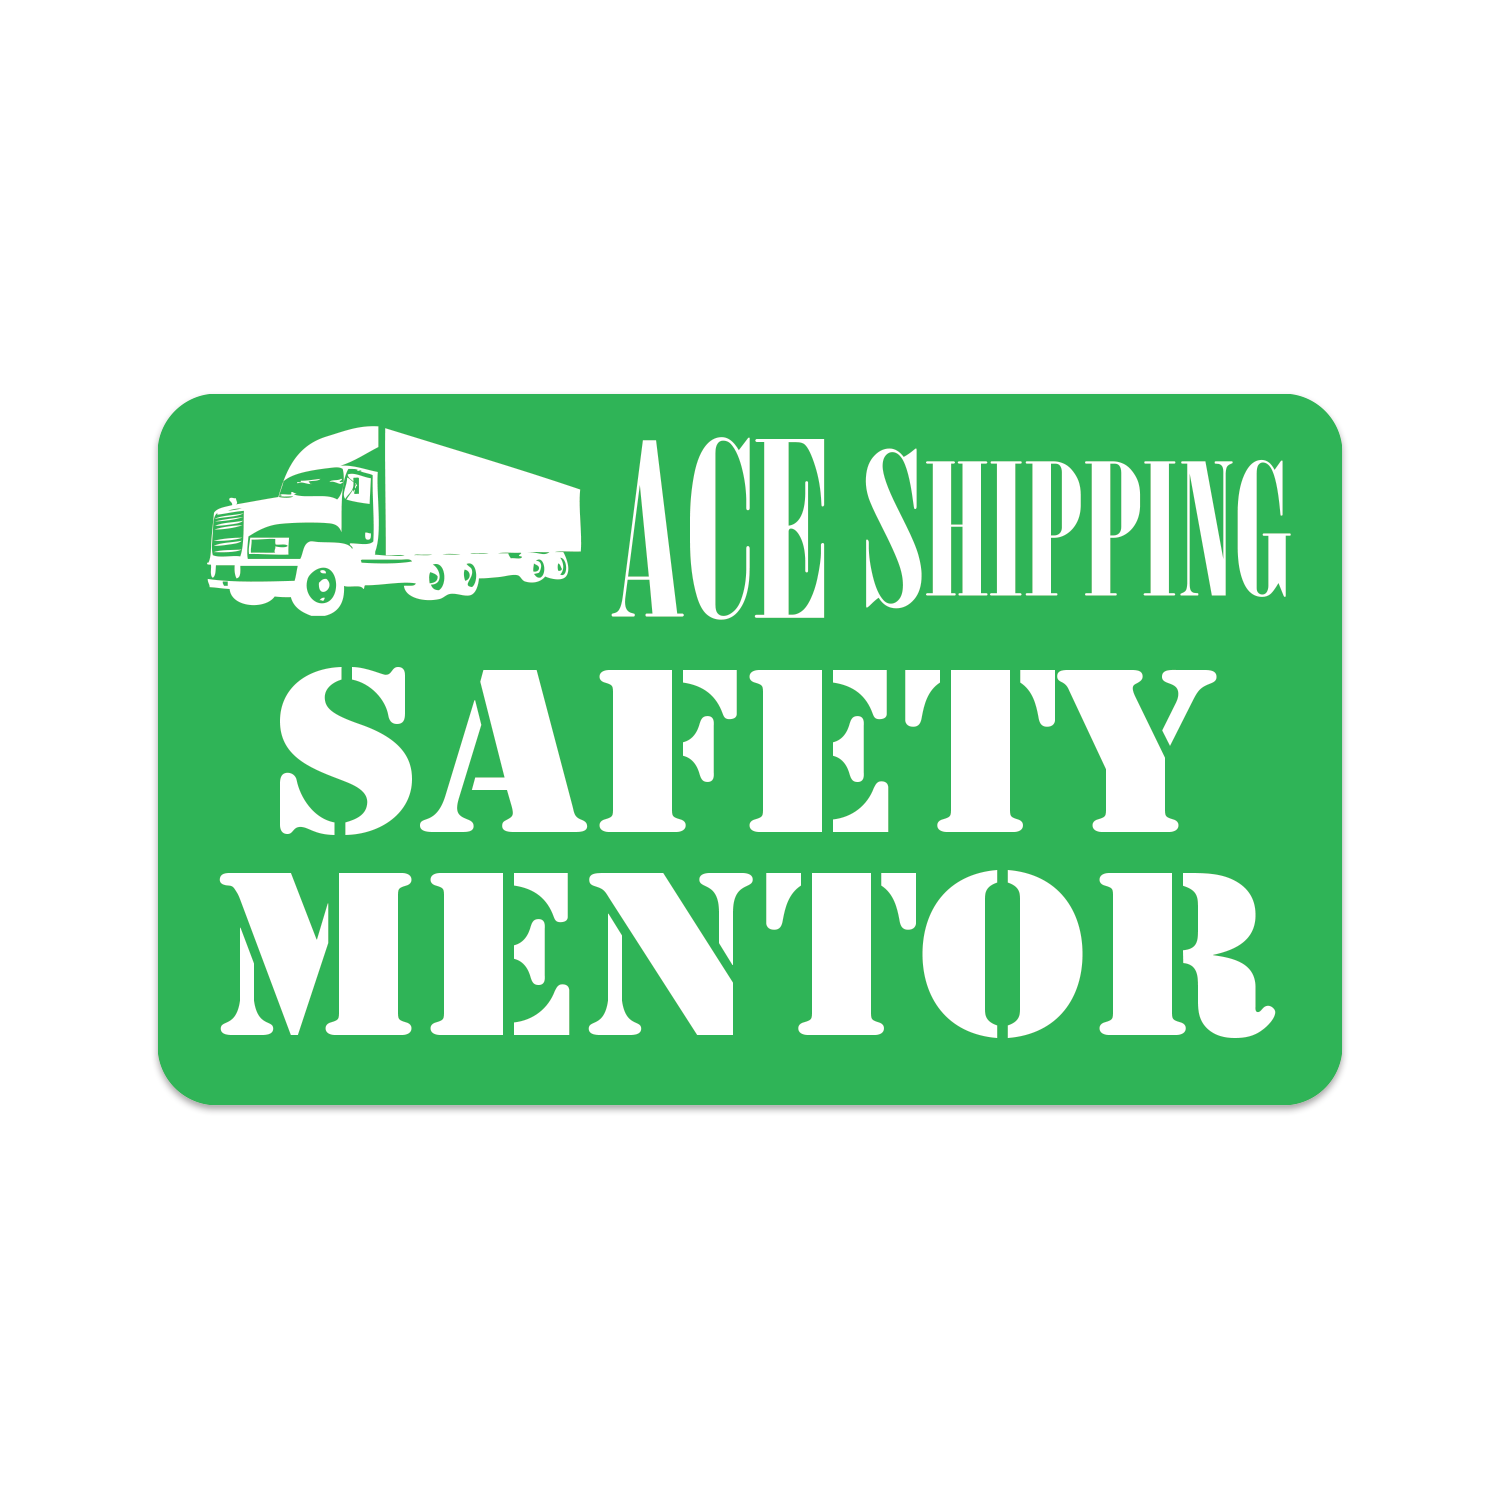 https://www.sswprinting.com/images/products_gallery_images/190401_Ace-Shipping_hi-res.png